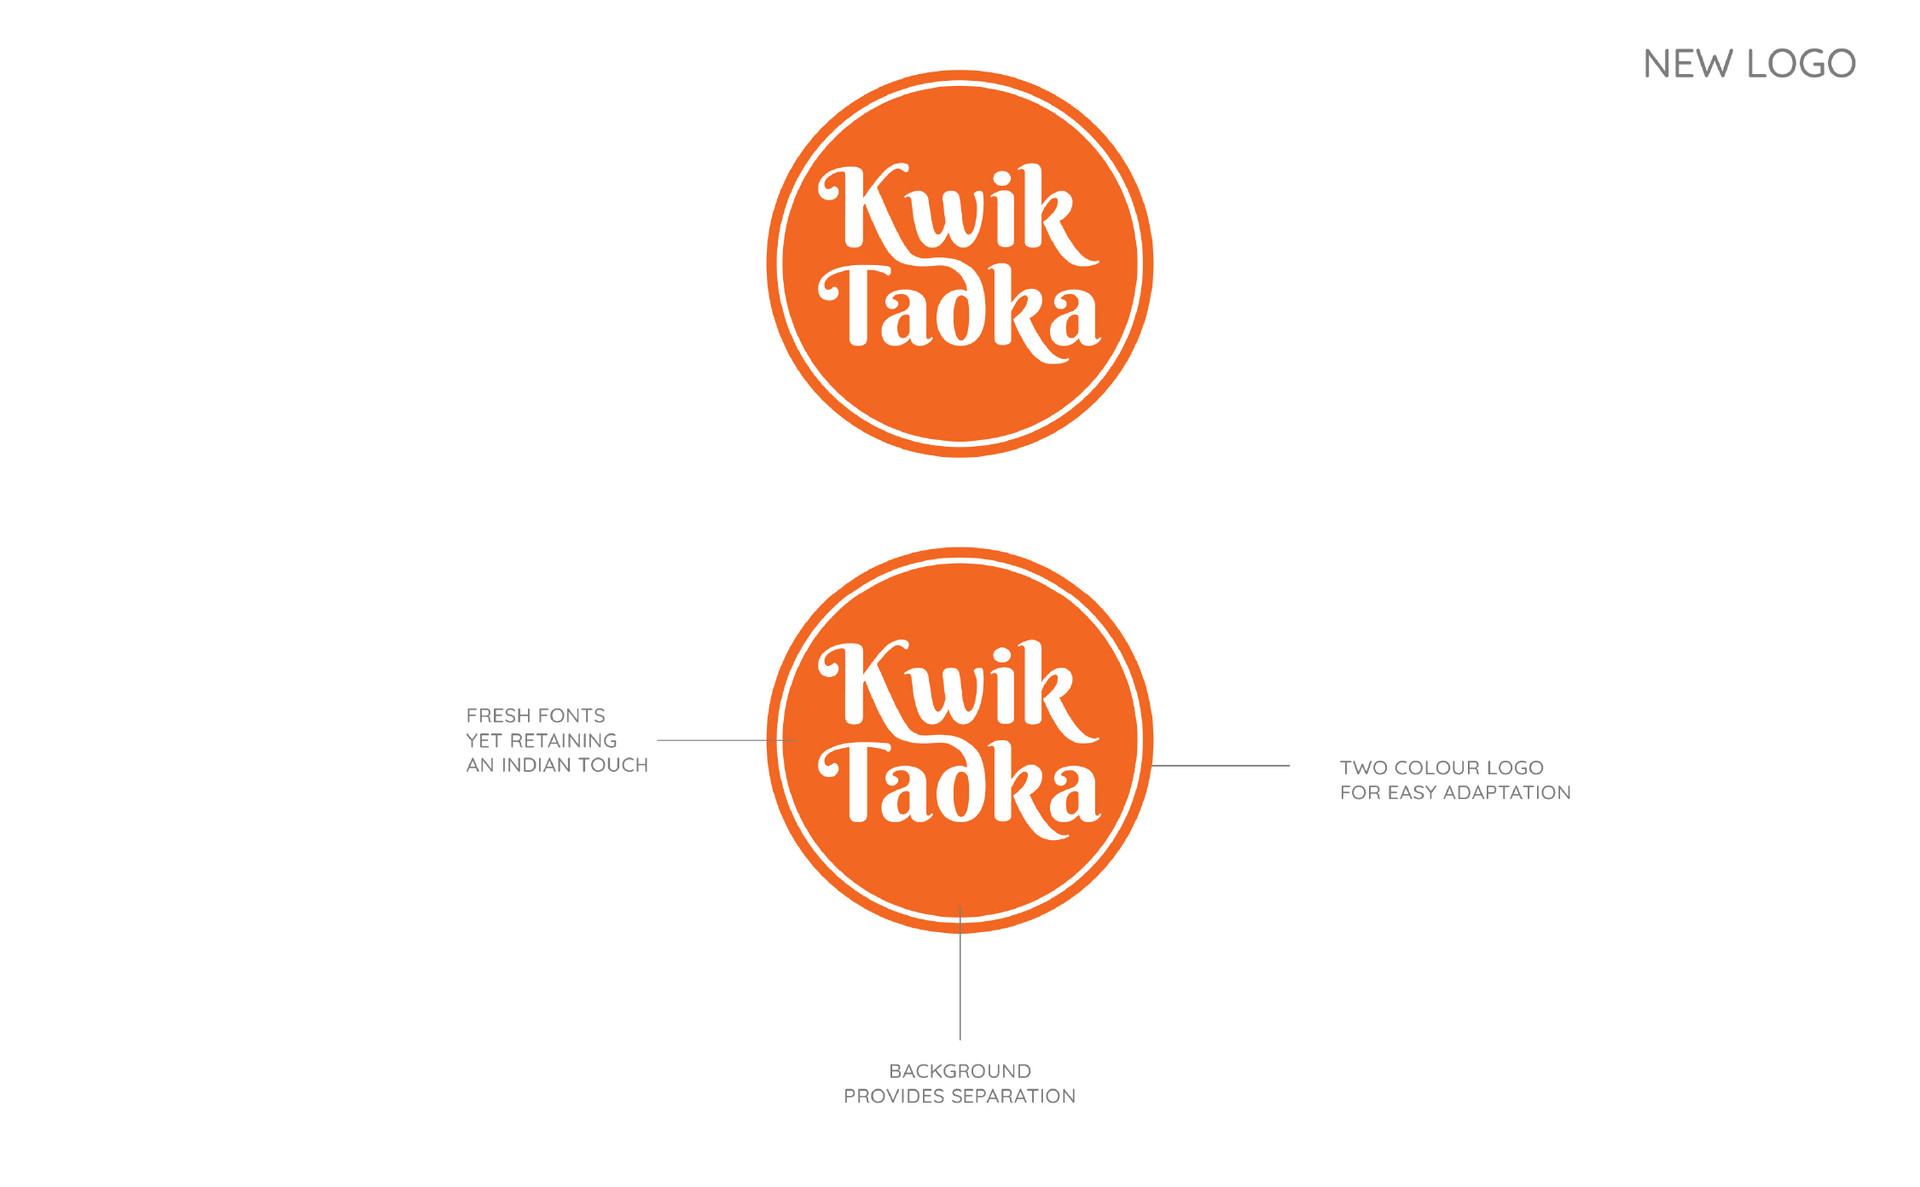 Kwik Tadka  New Logo.jpg